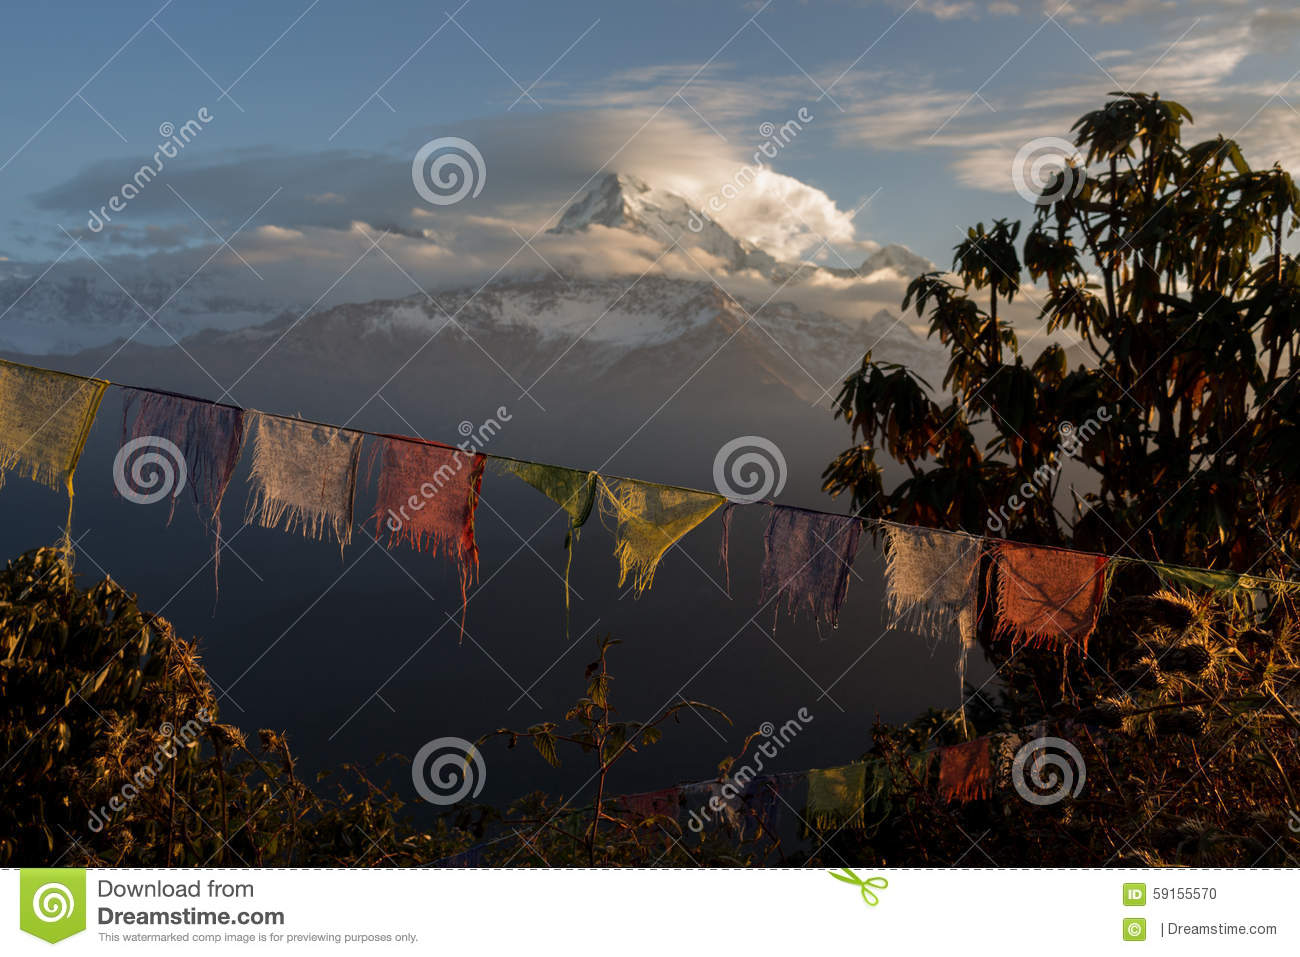 Prayer Flags at Poon Hill